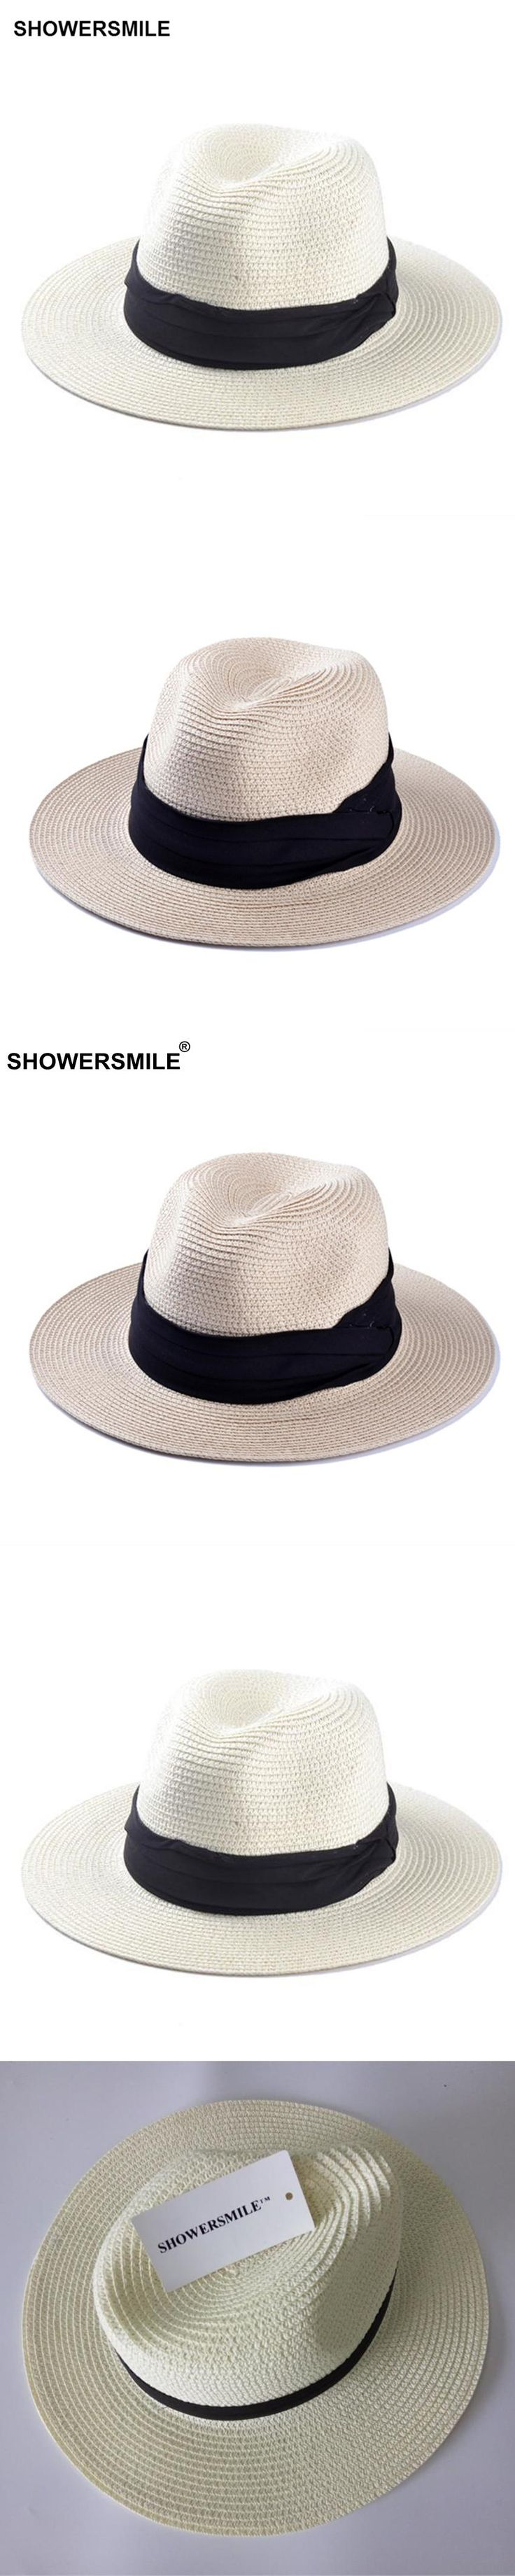 best 25+ sun hats for women ideas on pinterest | boater, summer